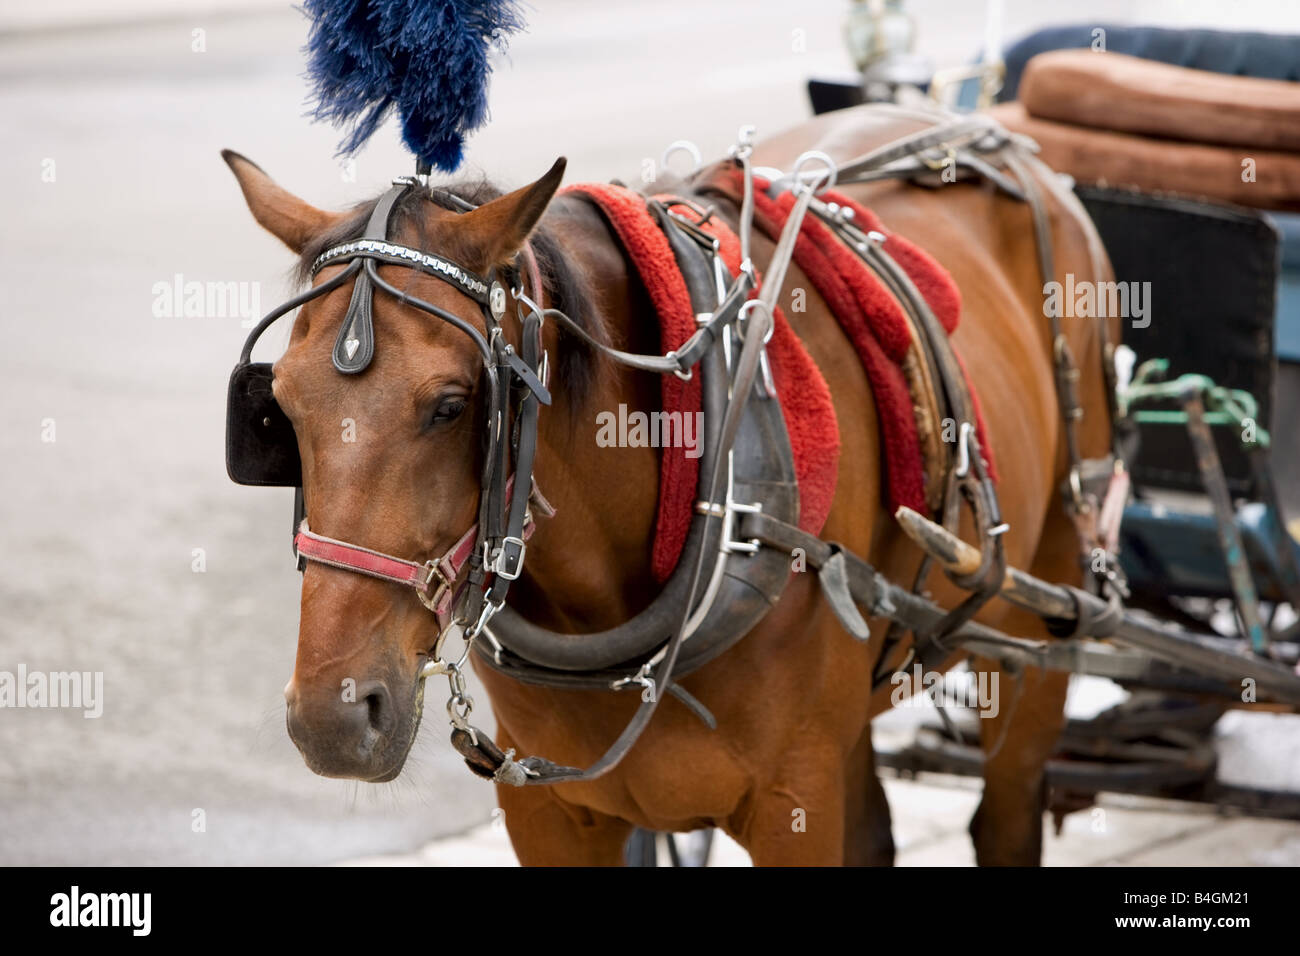 A horse-drawn carriage in Old Montreal, Quebec - Stock Image